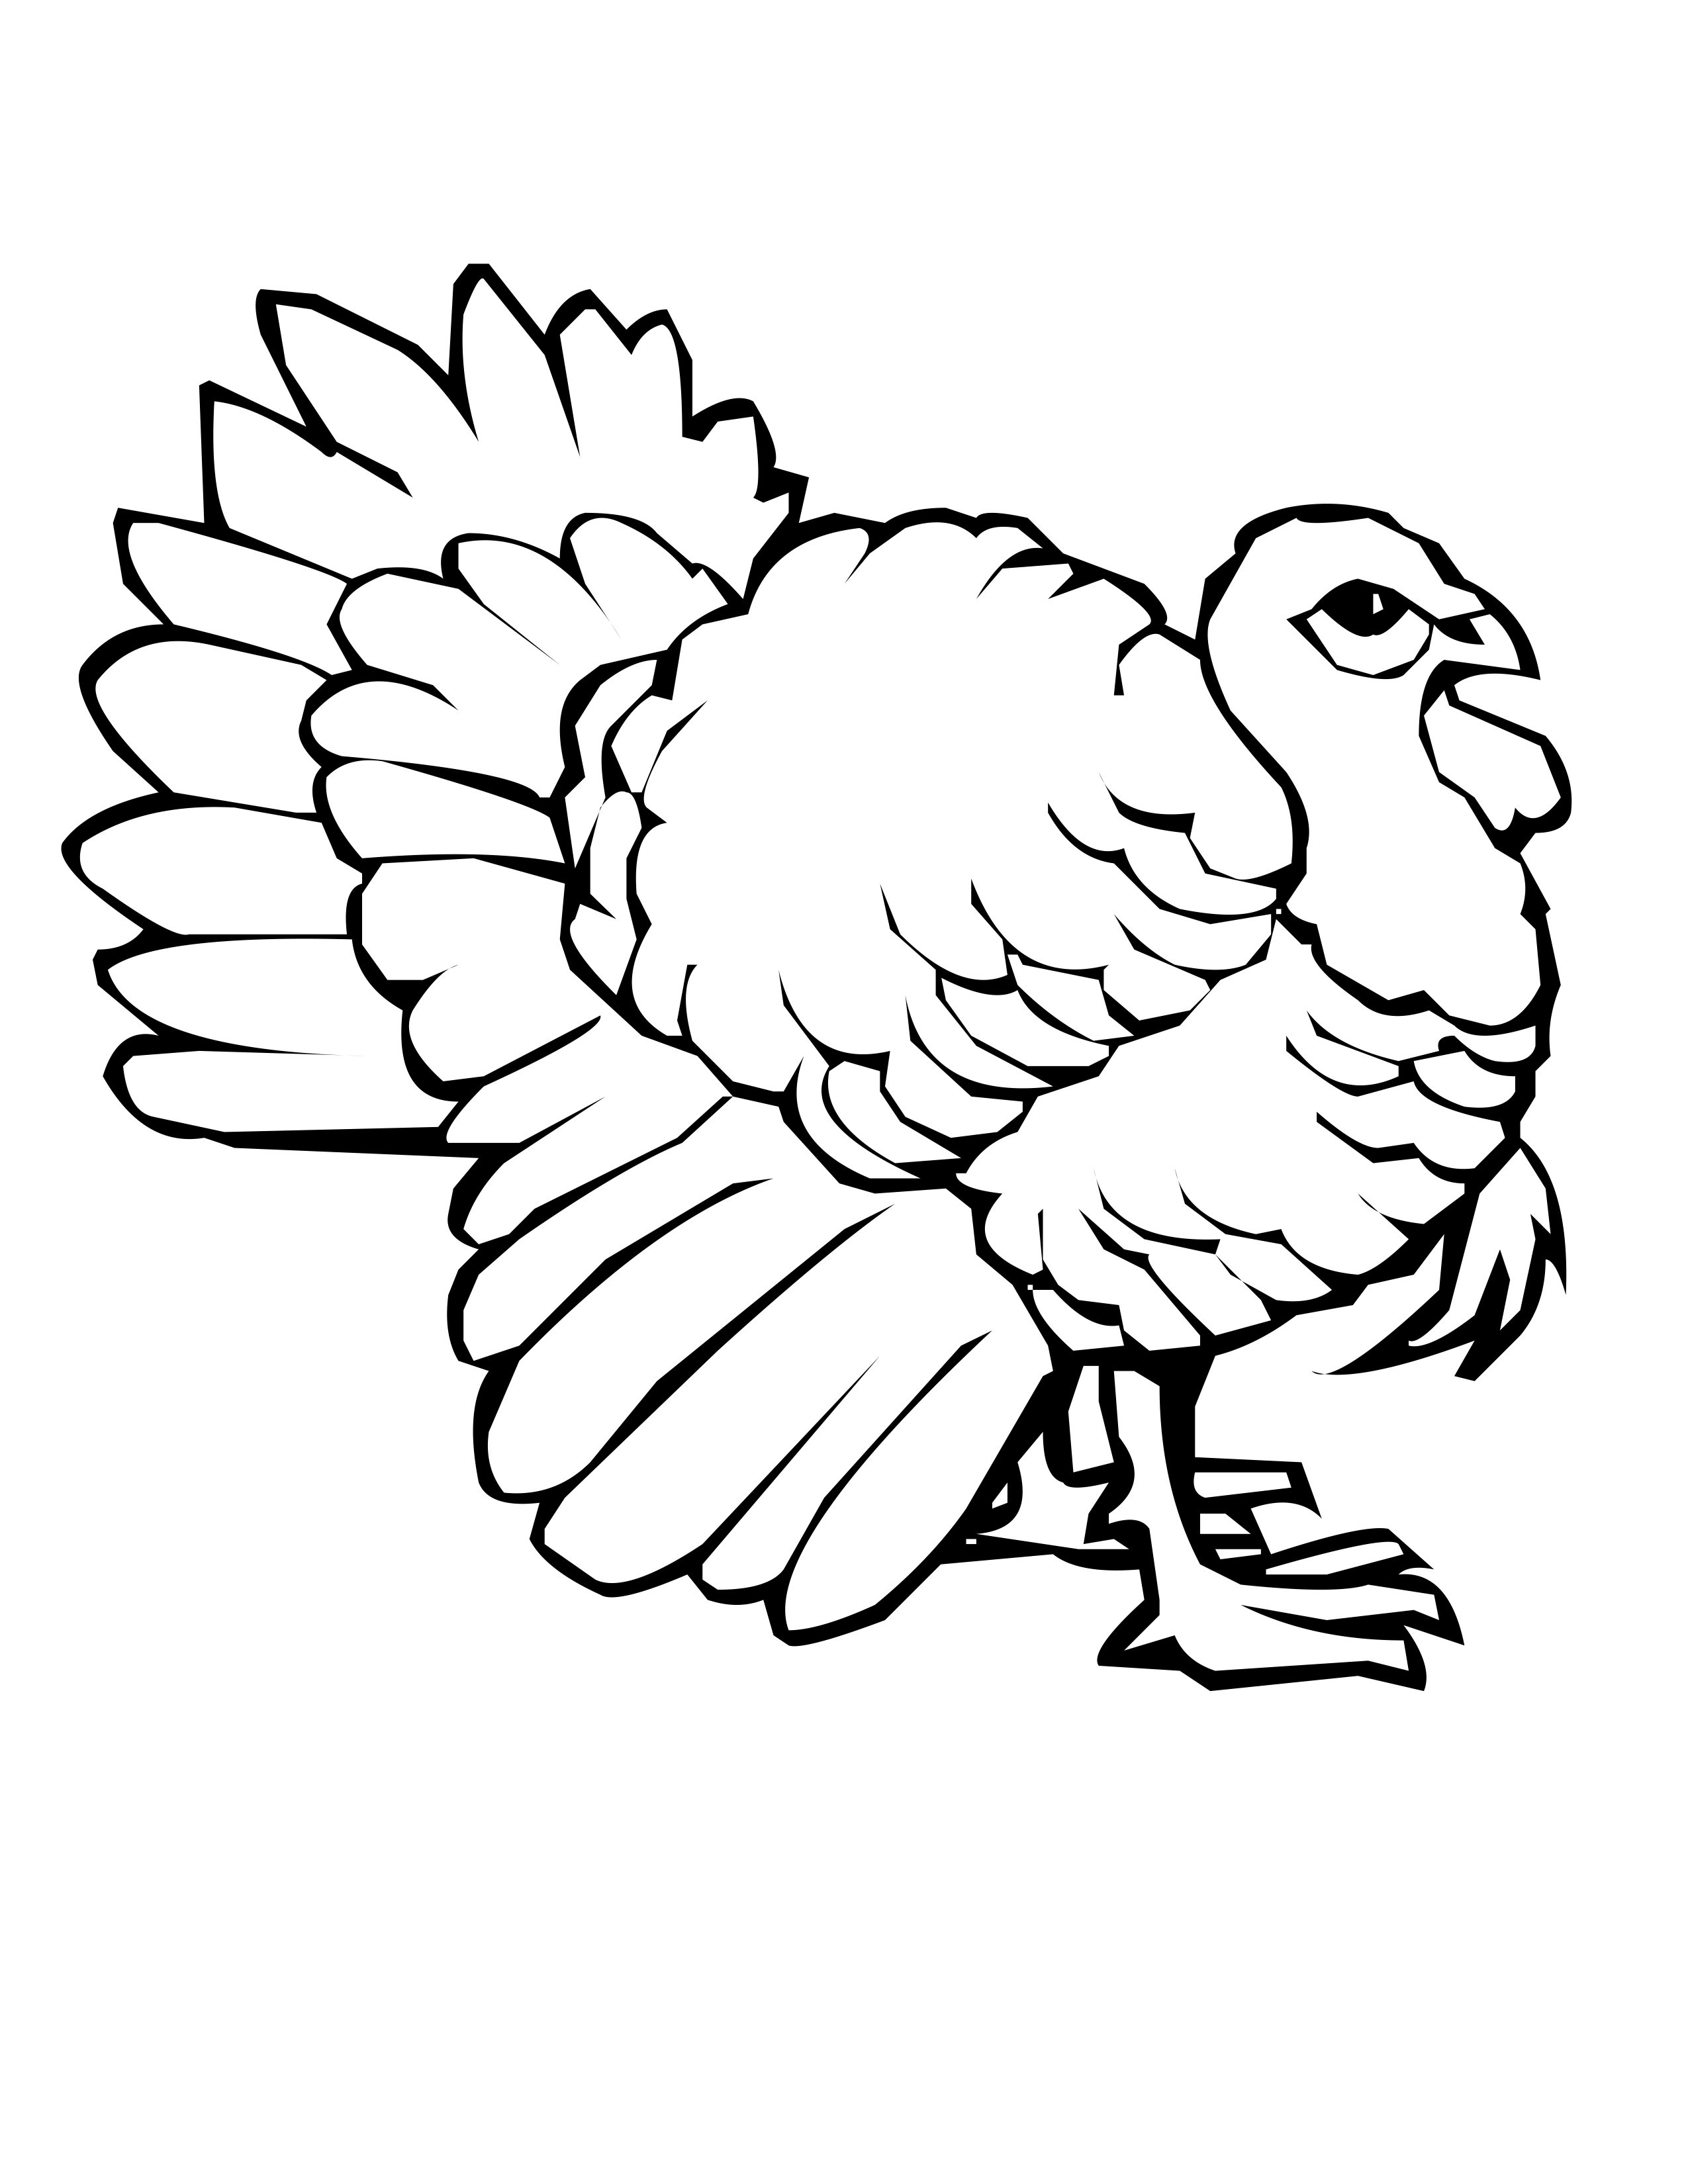 Coloring Book Pages Of Turkeys  Free Printable Turkey Coloring Pages For Kids